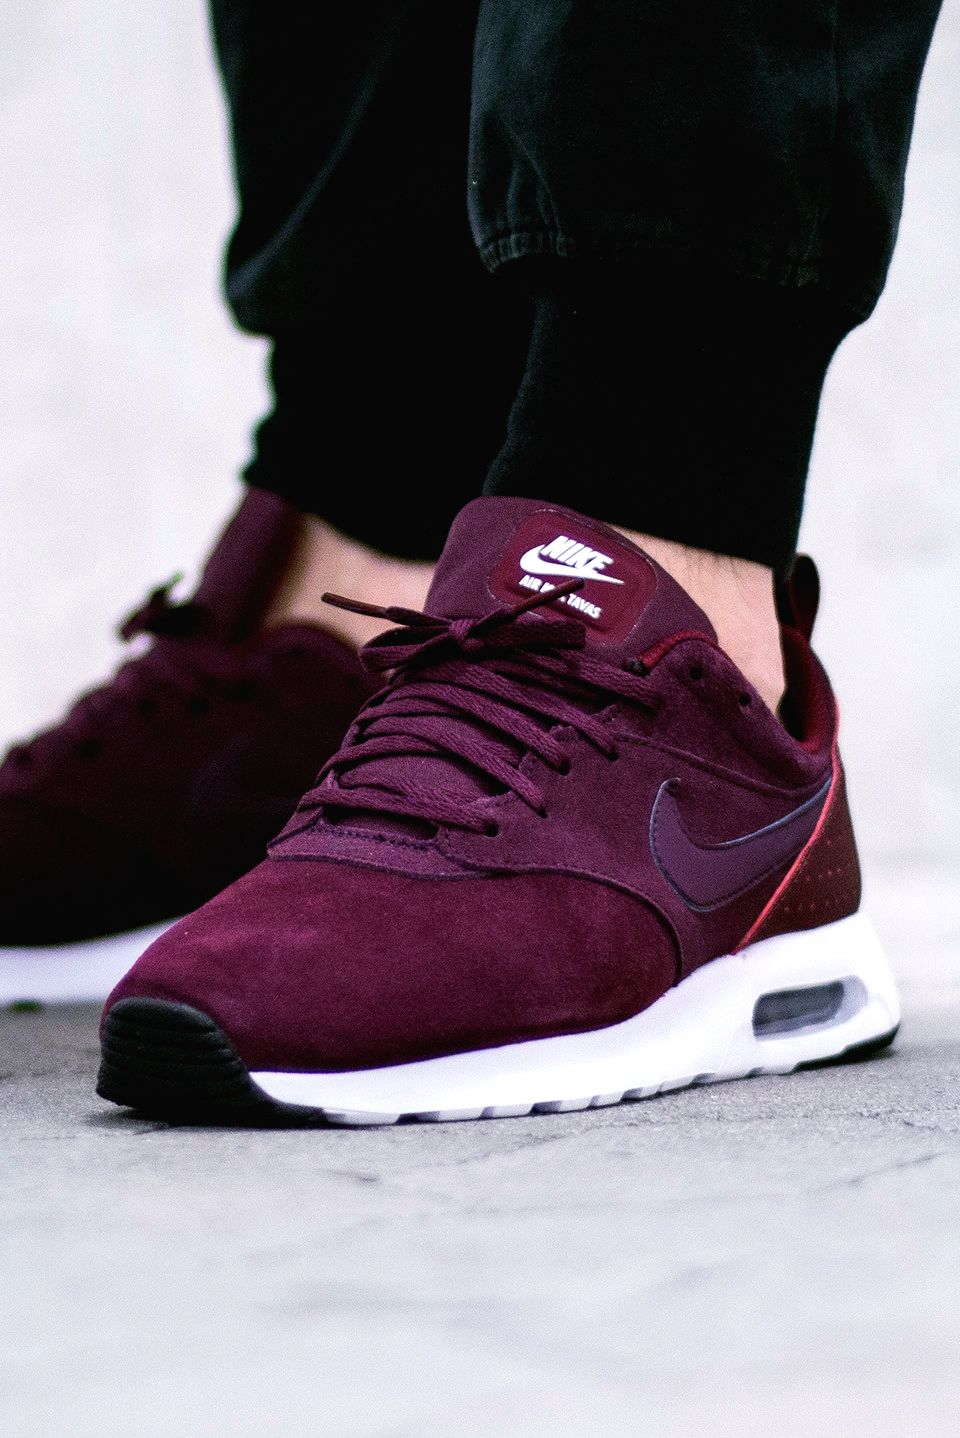 25c860e14b Nike Air Max Tavas LTR 'Night Maroon' (via Kicks-daily.com) | Shoe ...